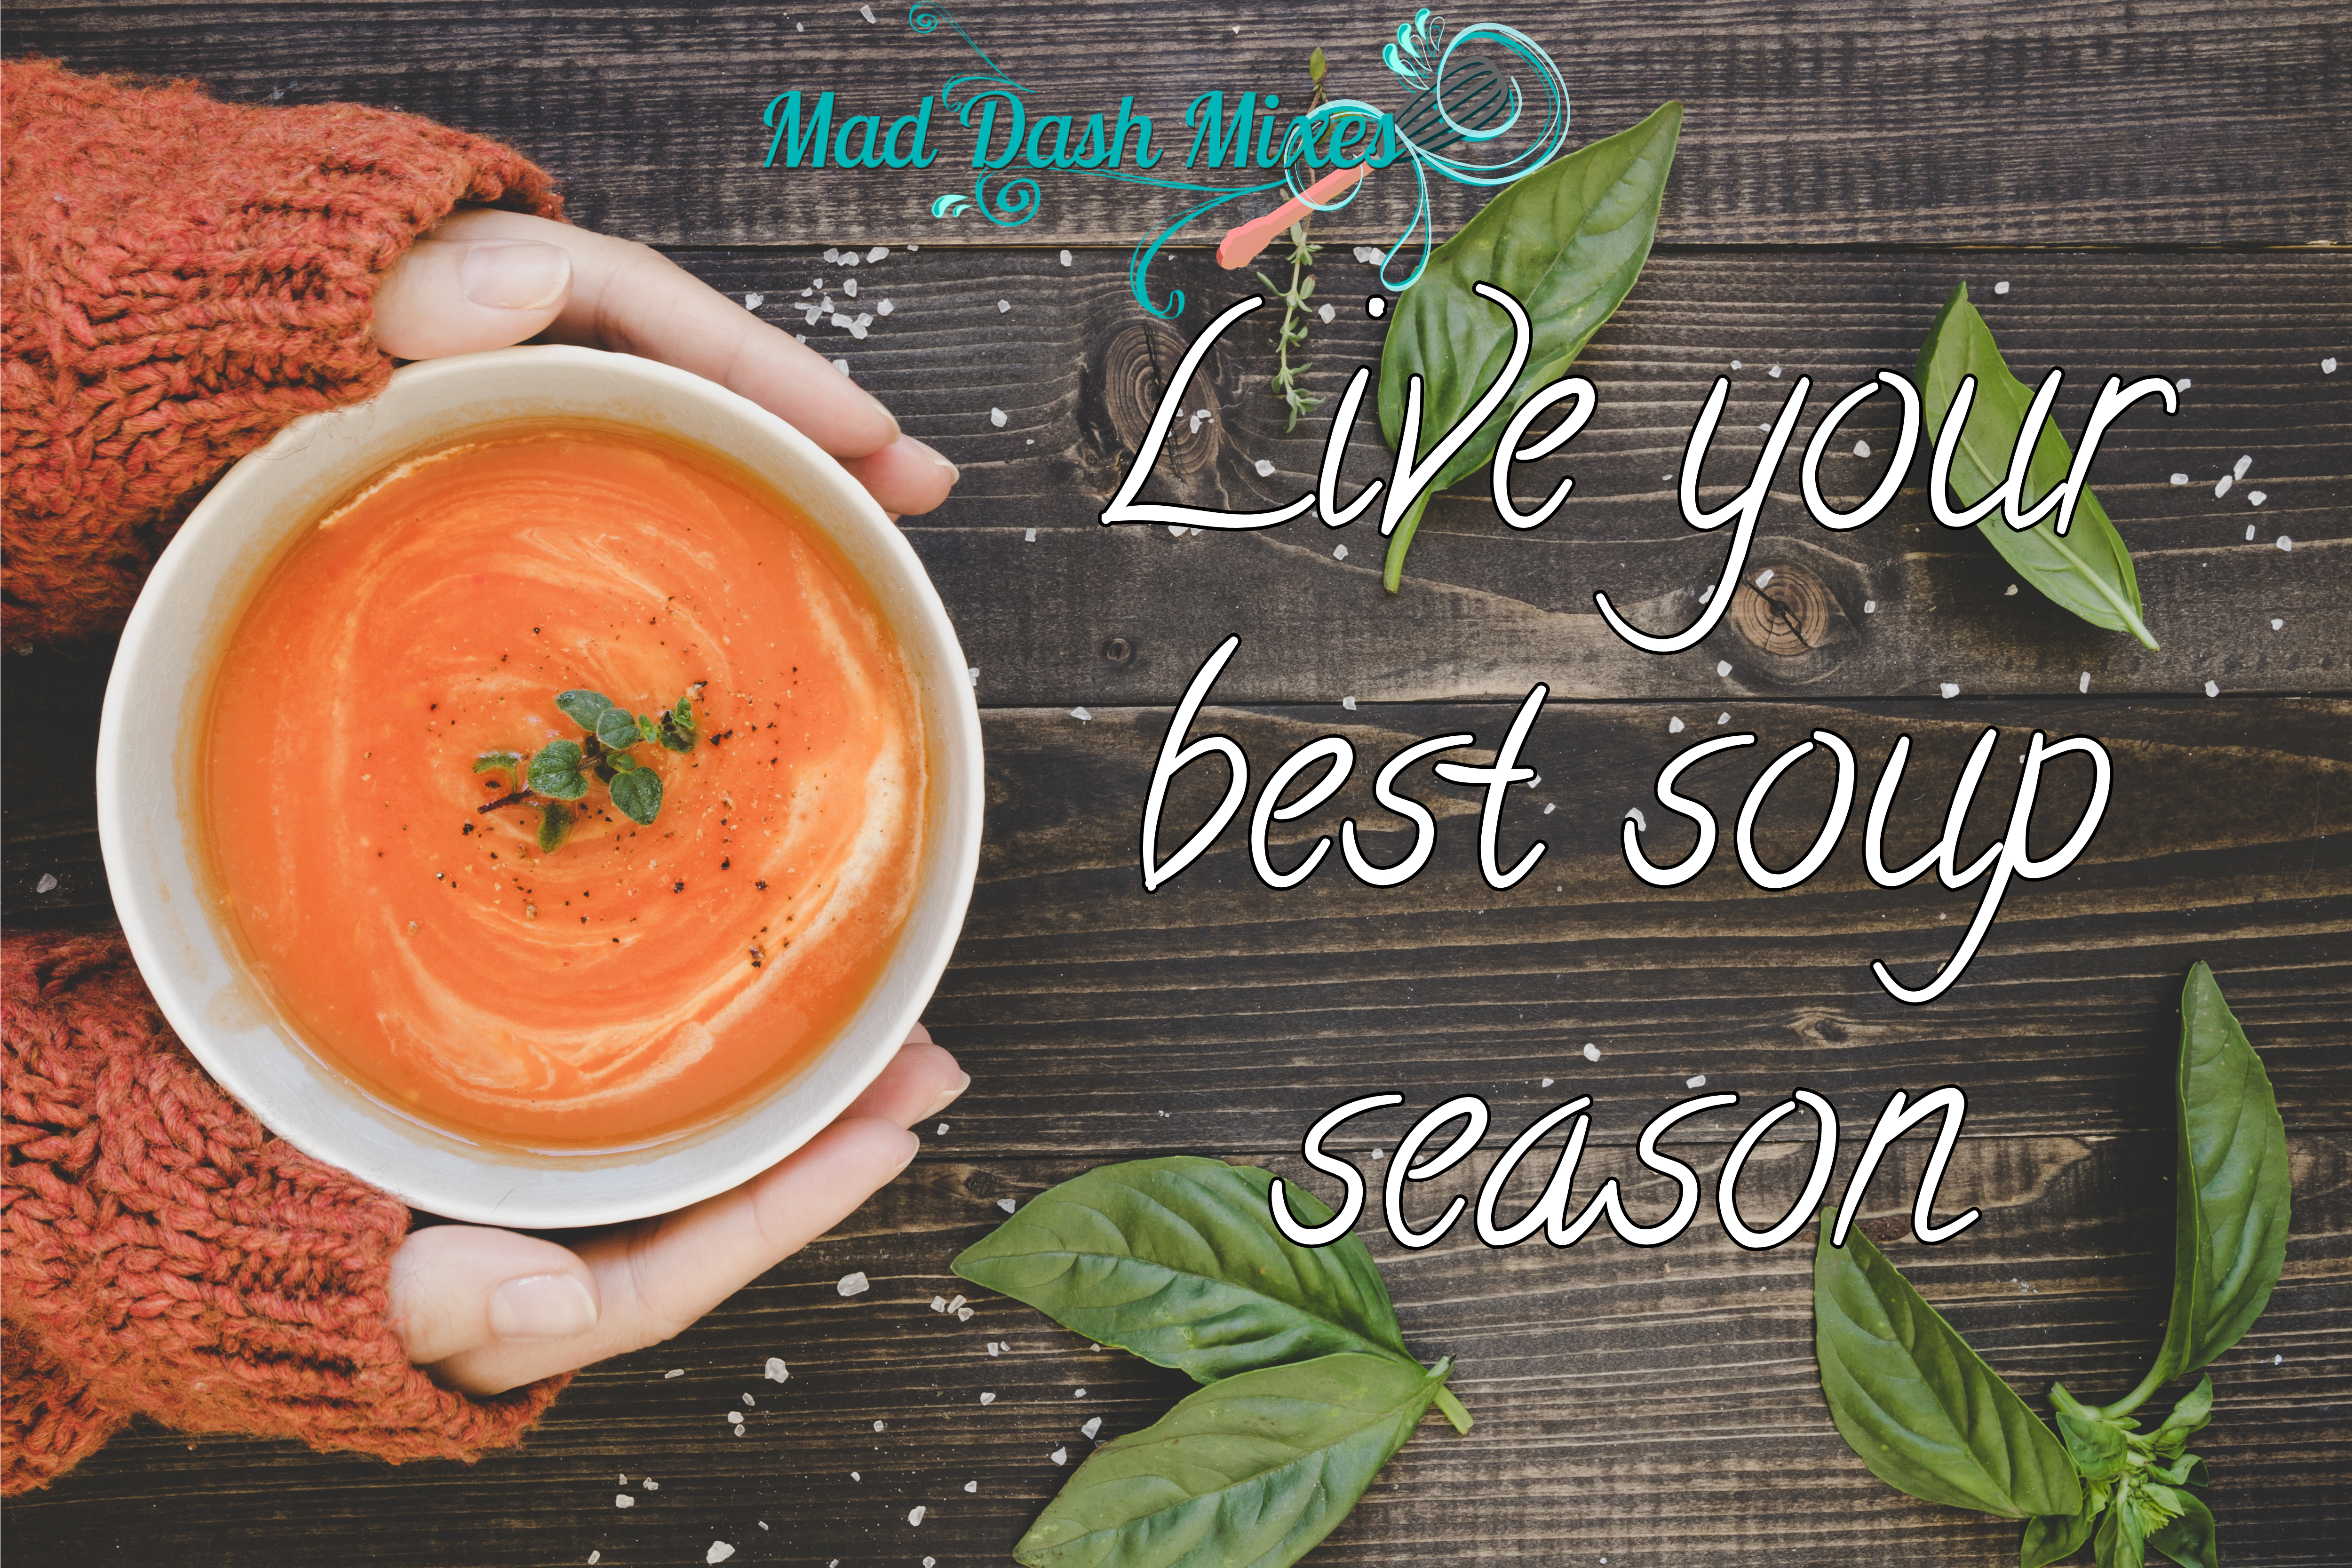 Live Your Best Soup Season